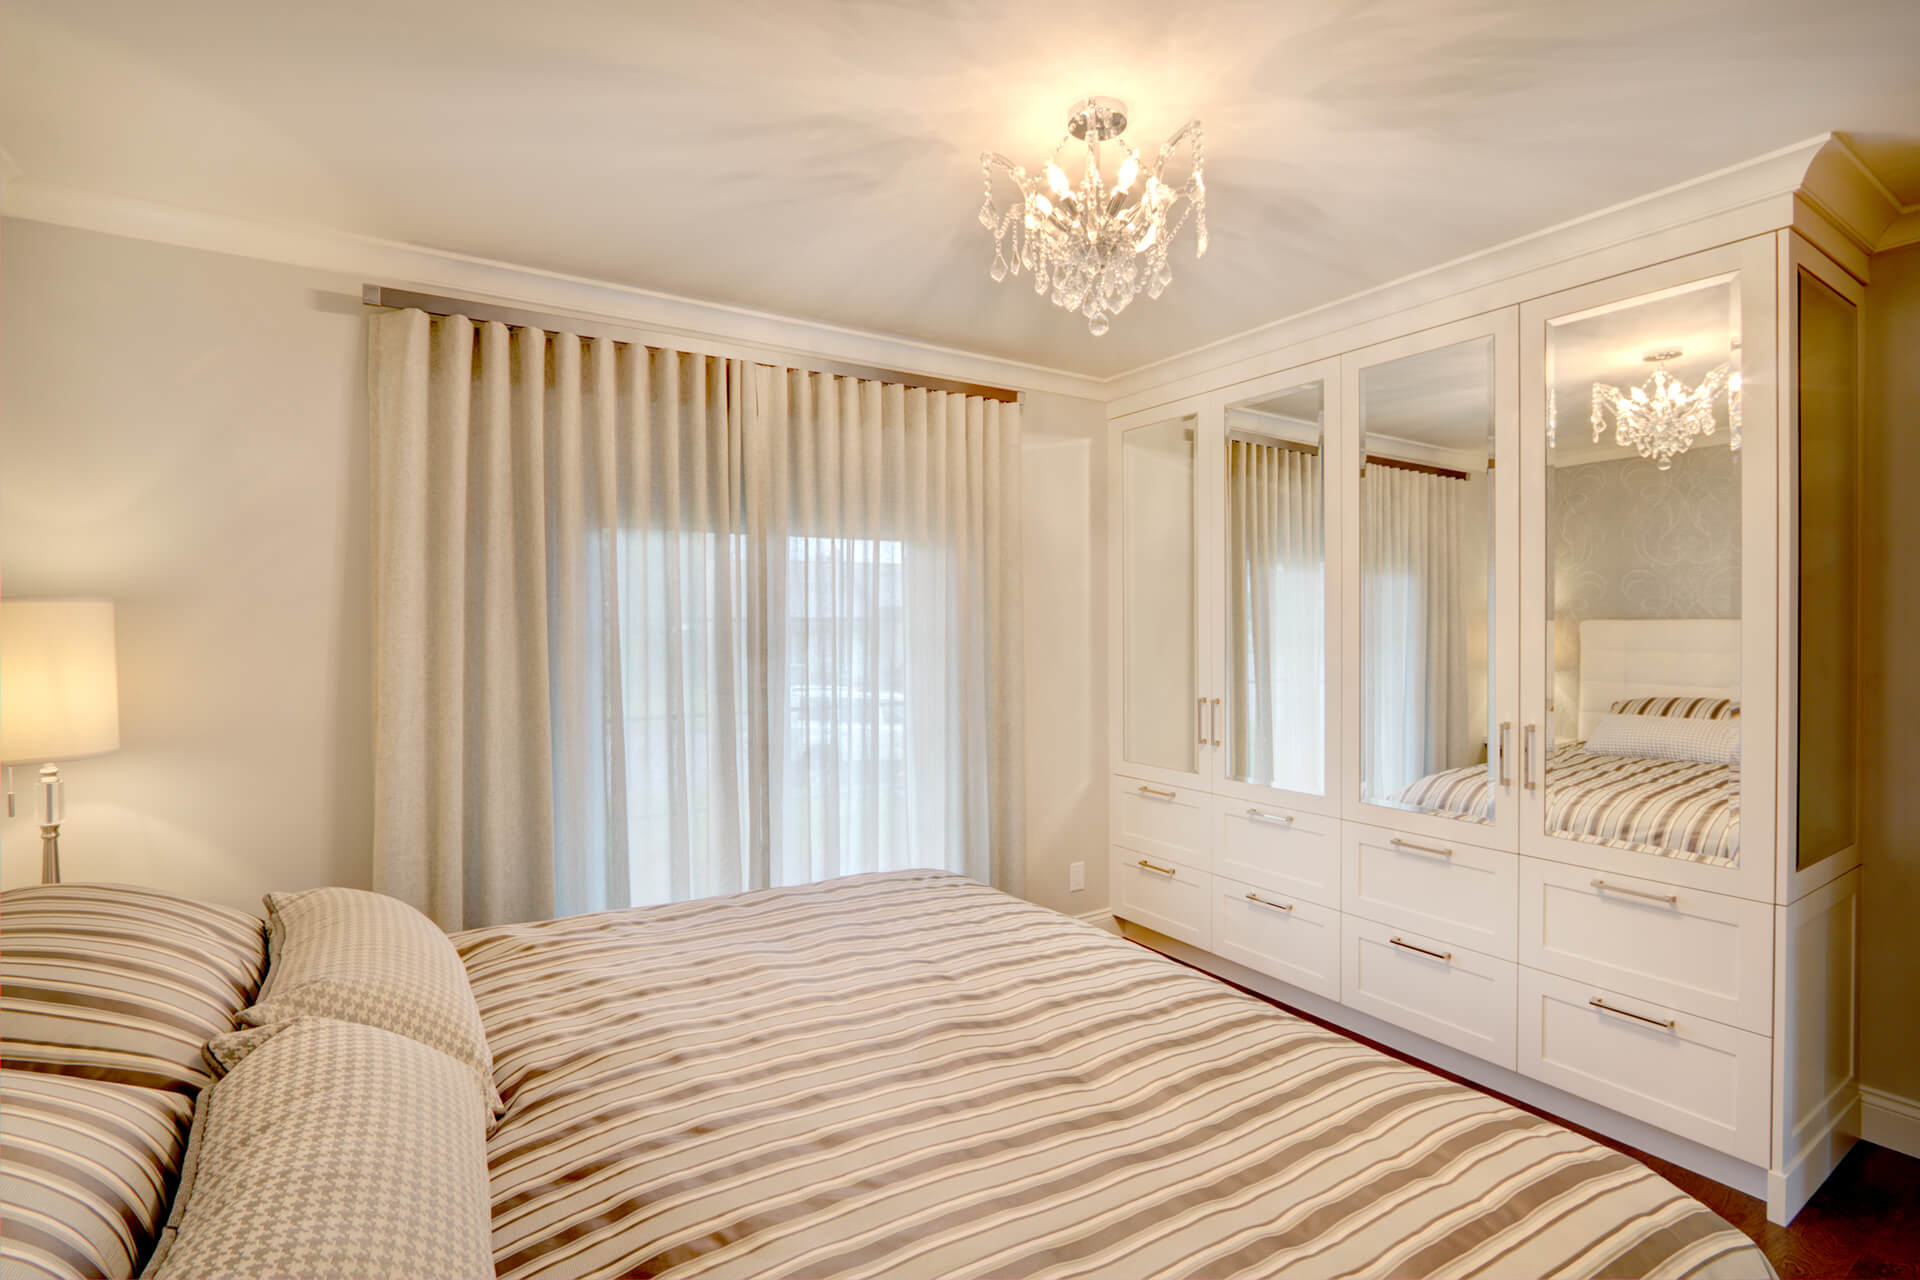 Mobilier chambre coucher christian marcoux for Mobilier chambre a coucher blanc